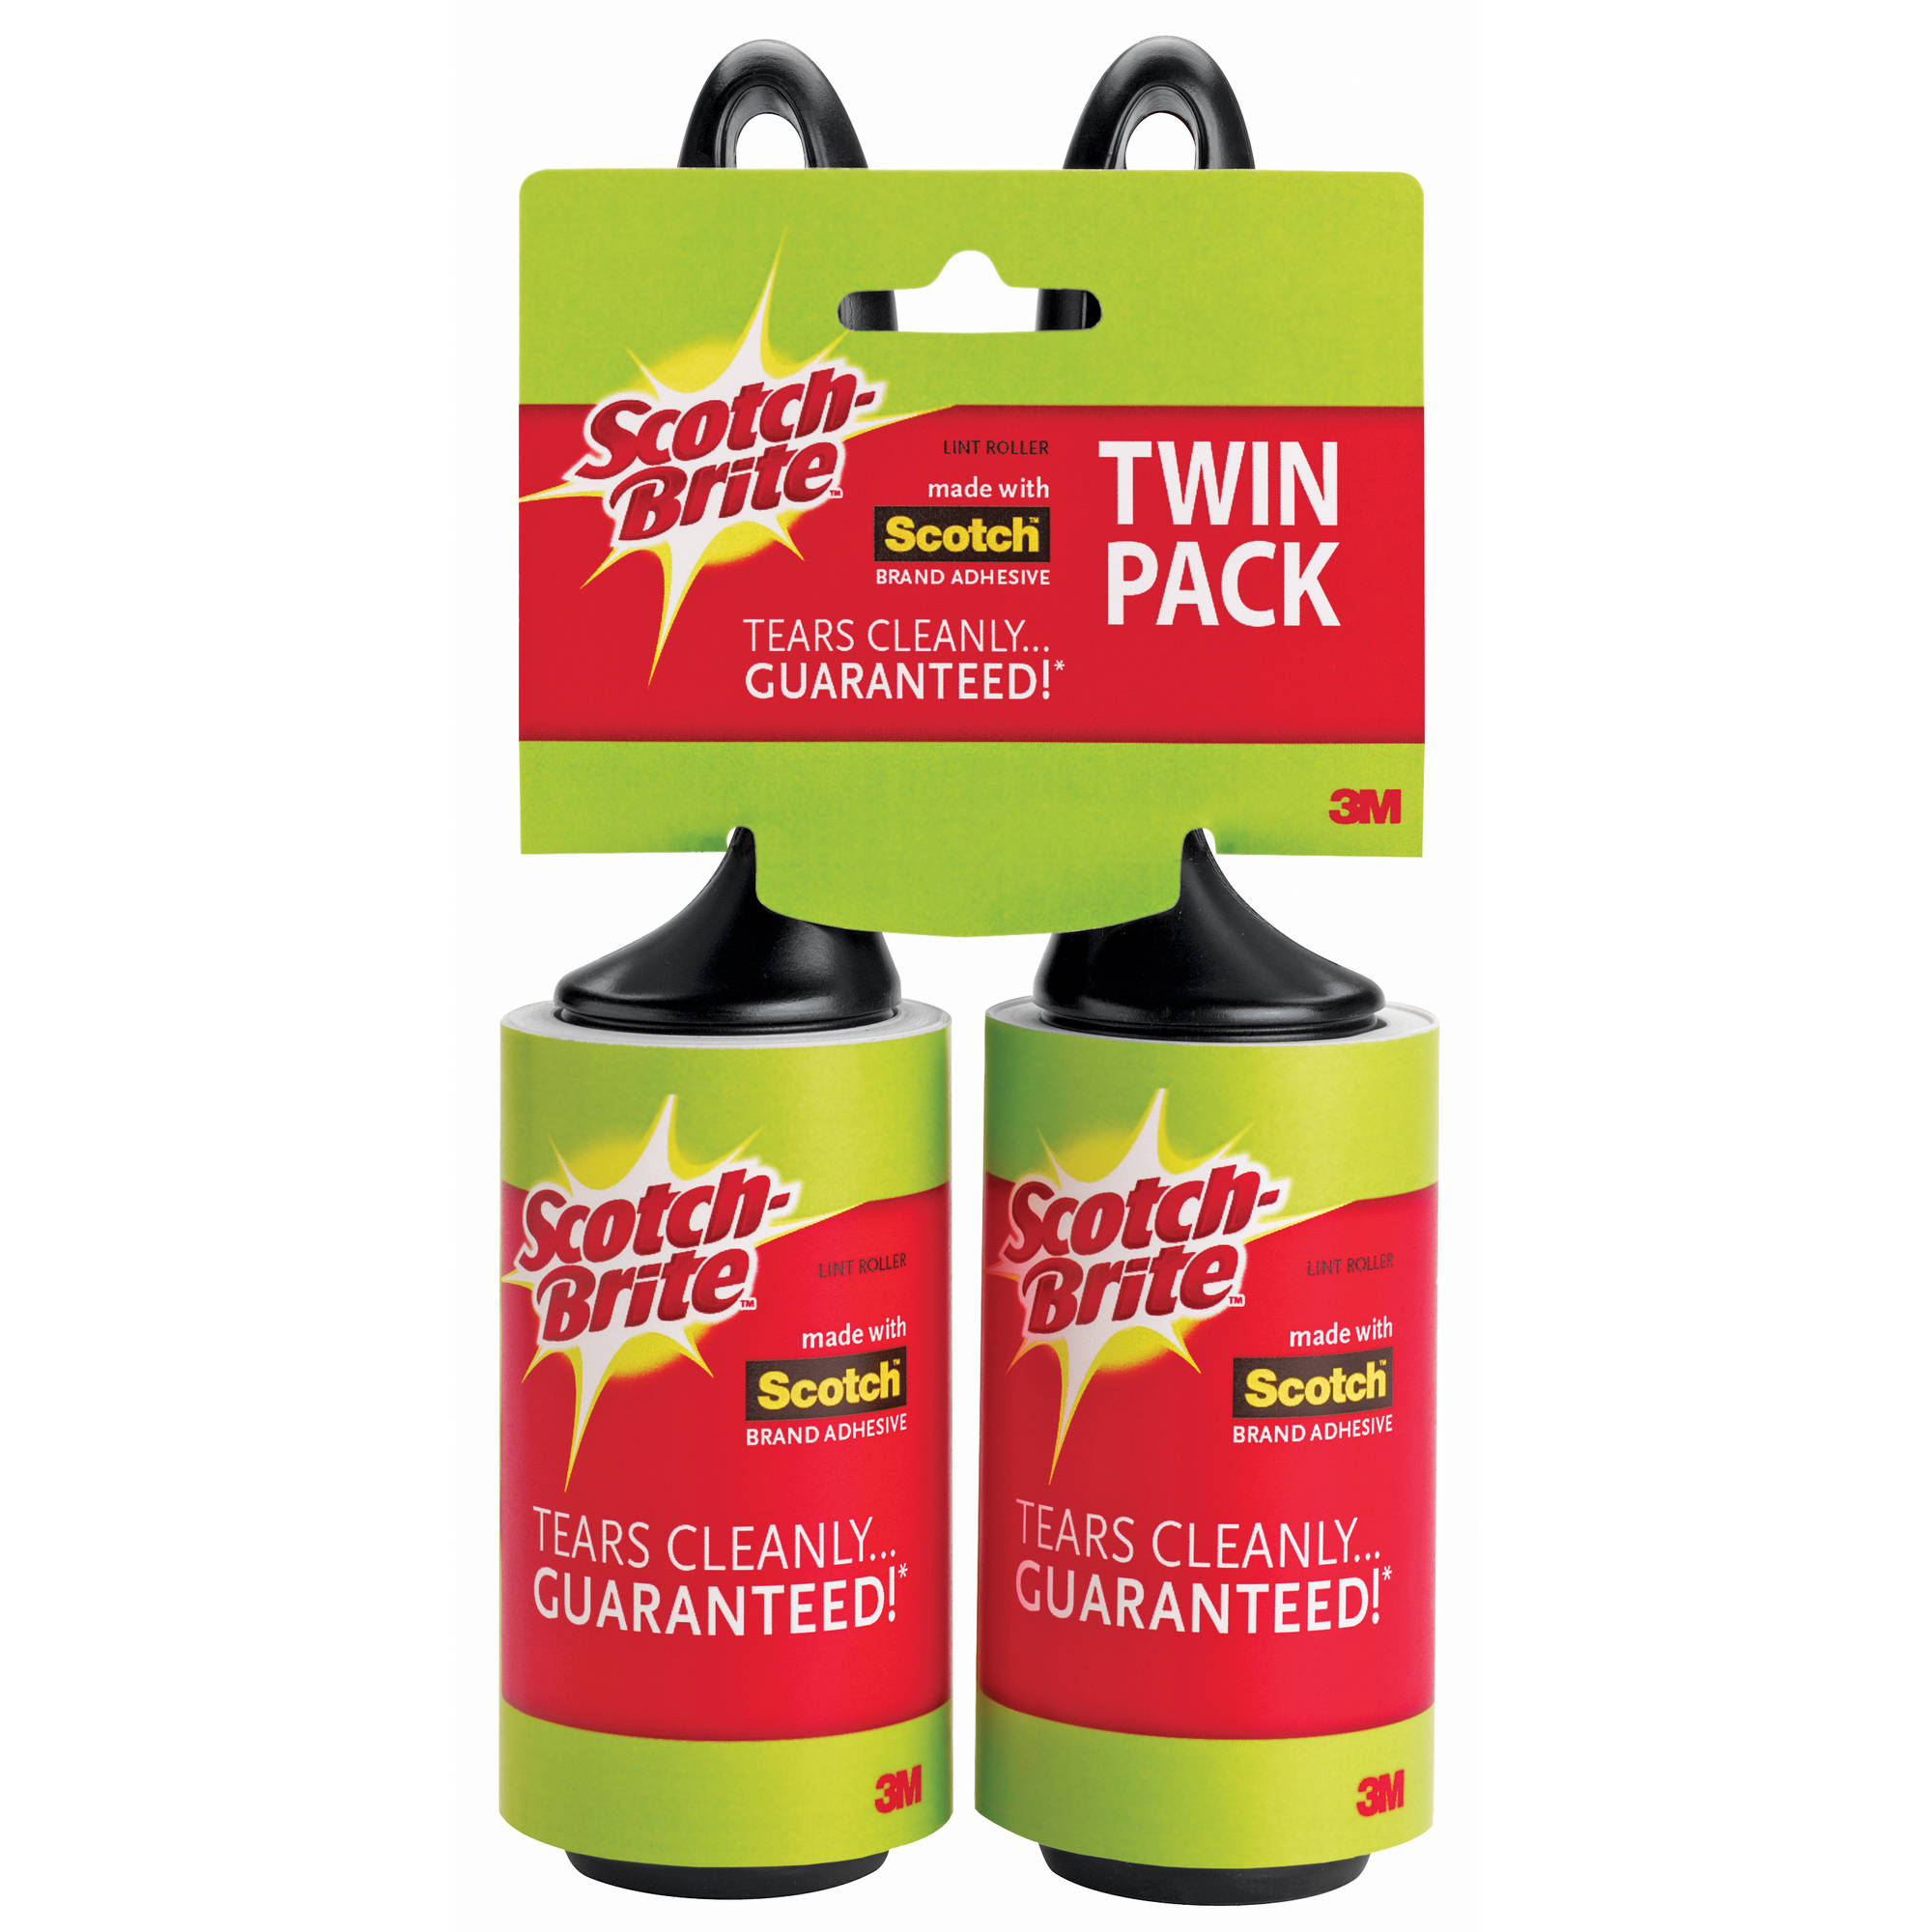 Scotch-Brite Lint Roller Value Pack, 2 Pack